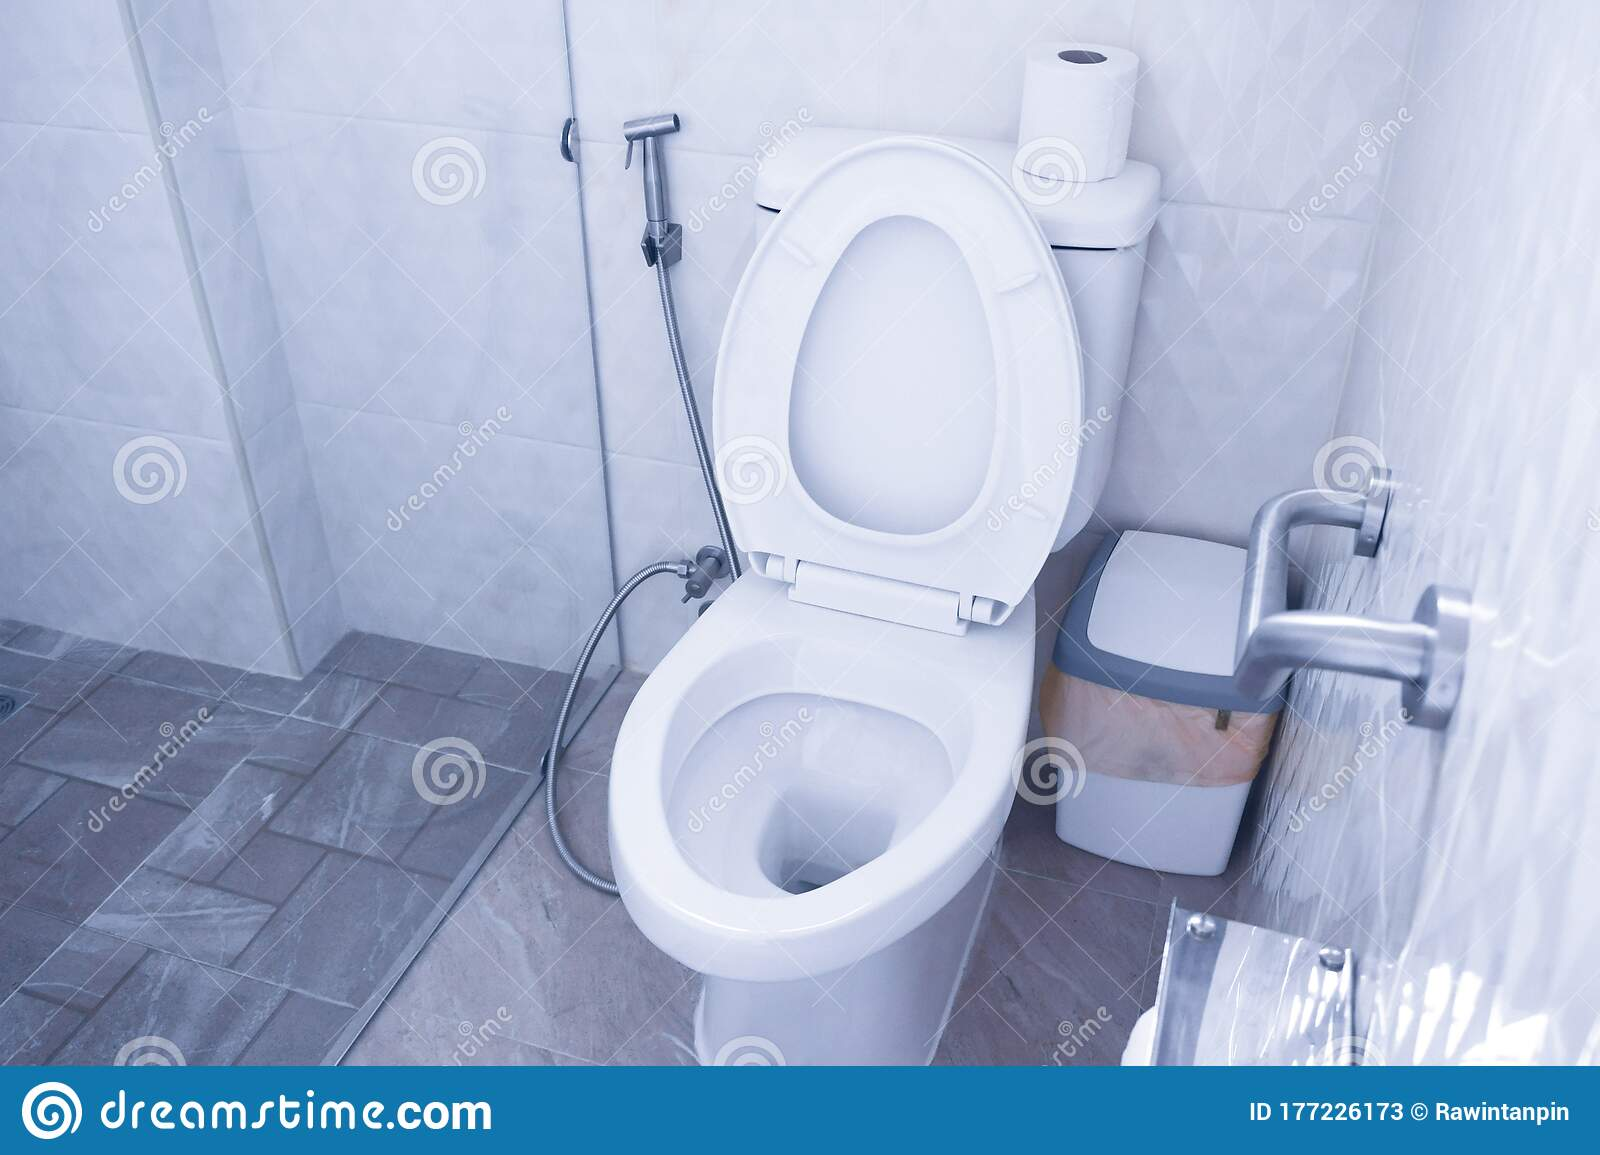 Toilet Bowl In Modern Bathroom With Bins And Toilet Paper Flush Toilet Clean Bathroom Stock Image Image Of Tiles Grandsire 177226173